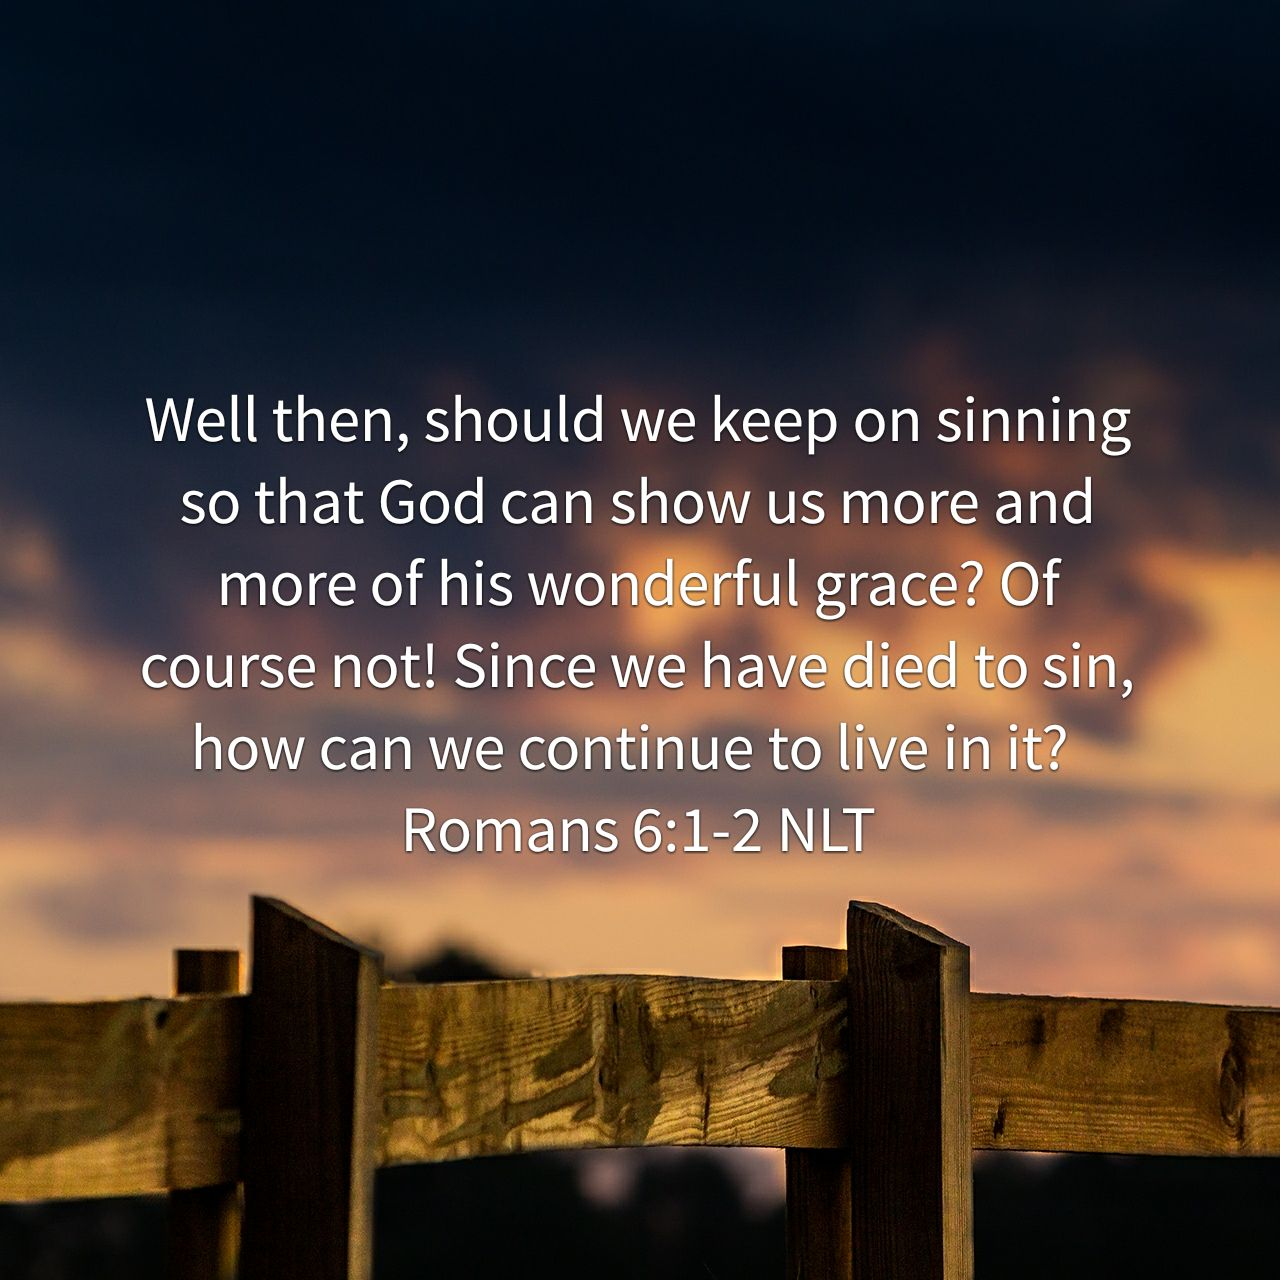 Well then, should we keep on sinning so that God can show us more and more of his wonderful grace? Of course not! Since we have died to sin, how can we continue to live in it? - Romans 6:1‭-‬2 NLT